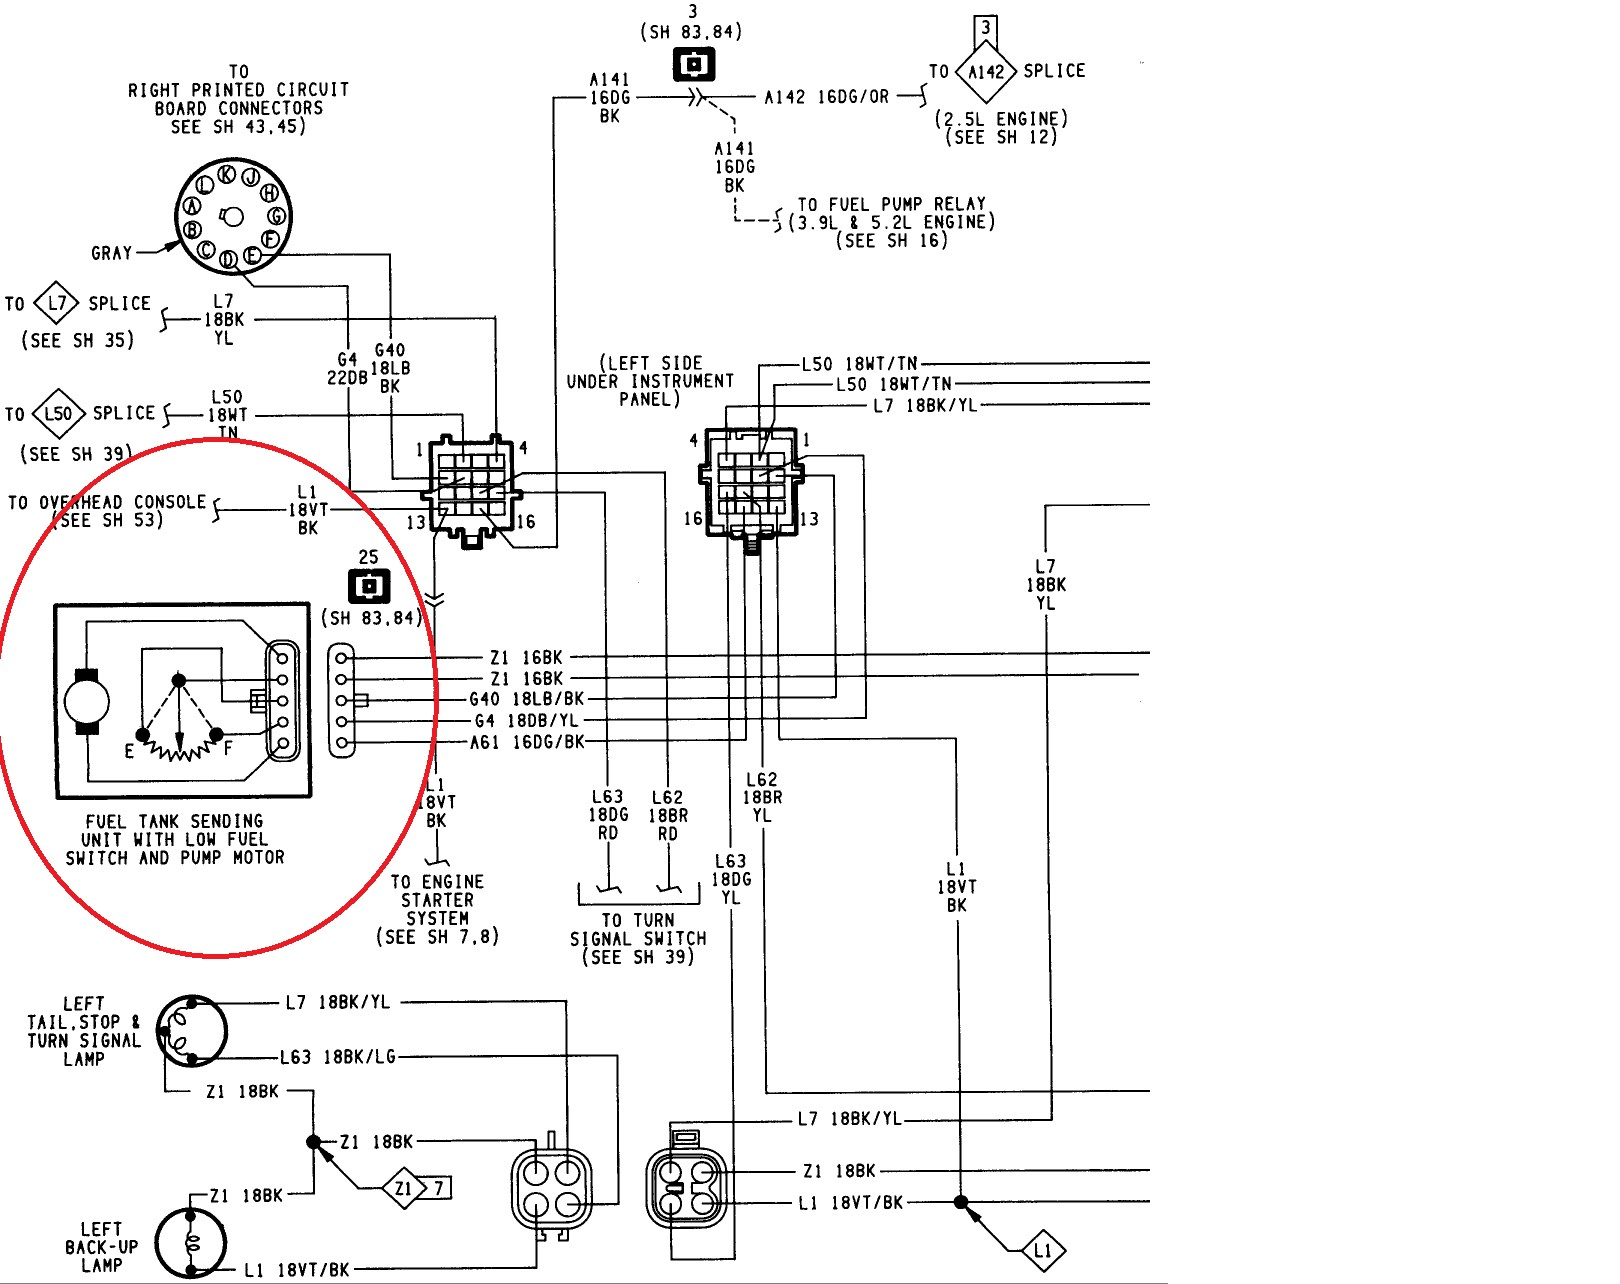 gm fuel sending unit wiring diagram wiring diagram image rh  mainetreasurechest com 2Wire Fuel Sending Unit Fuel Sending Unit Diagram